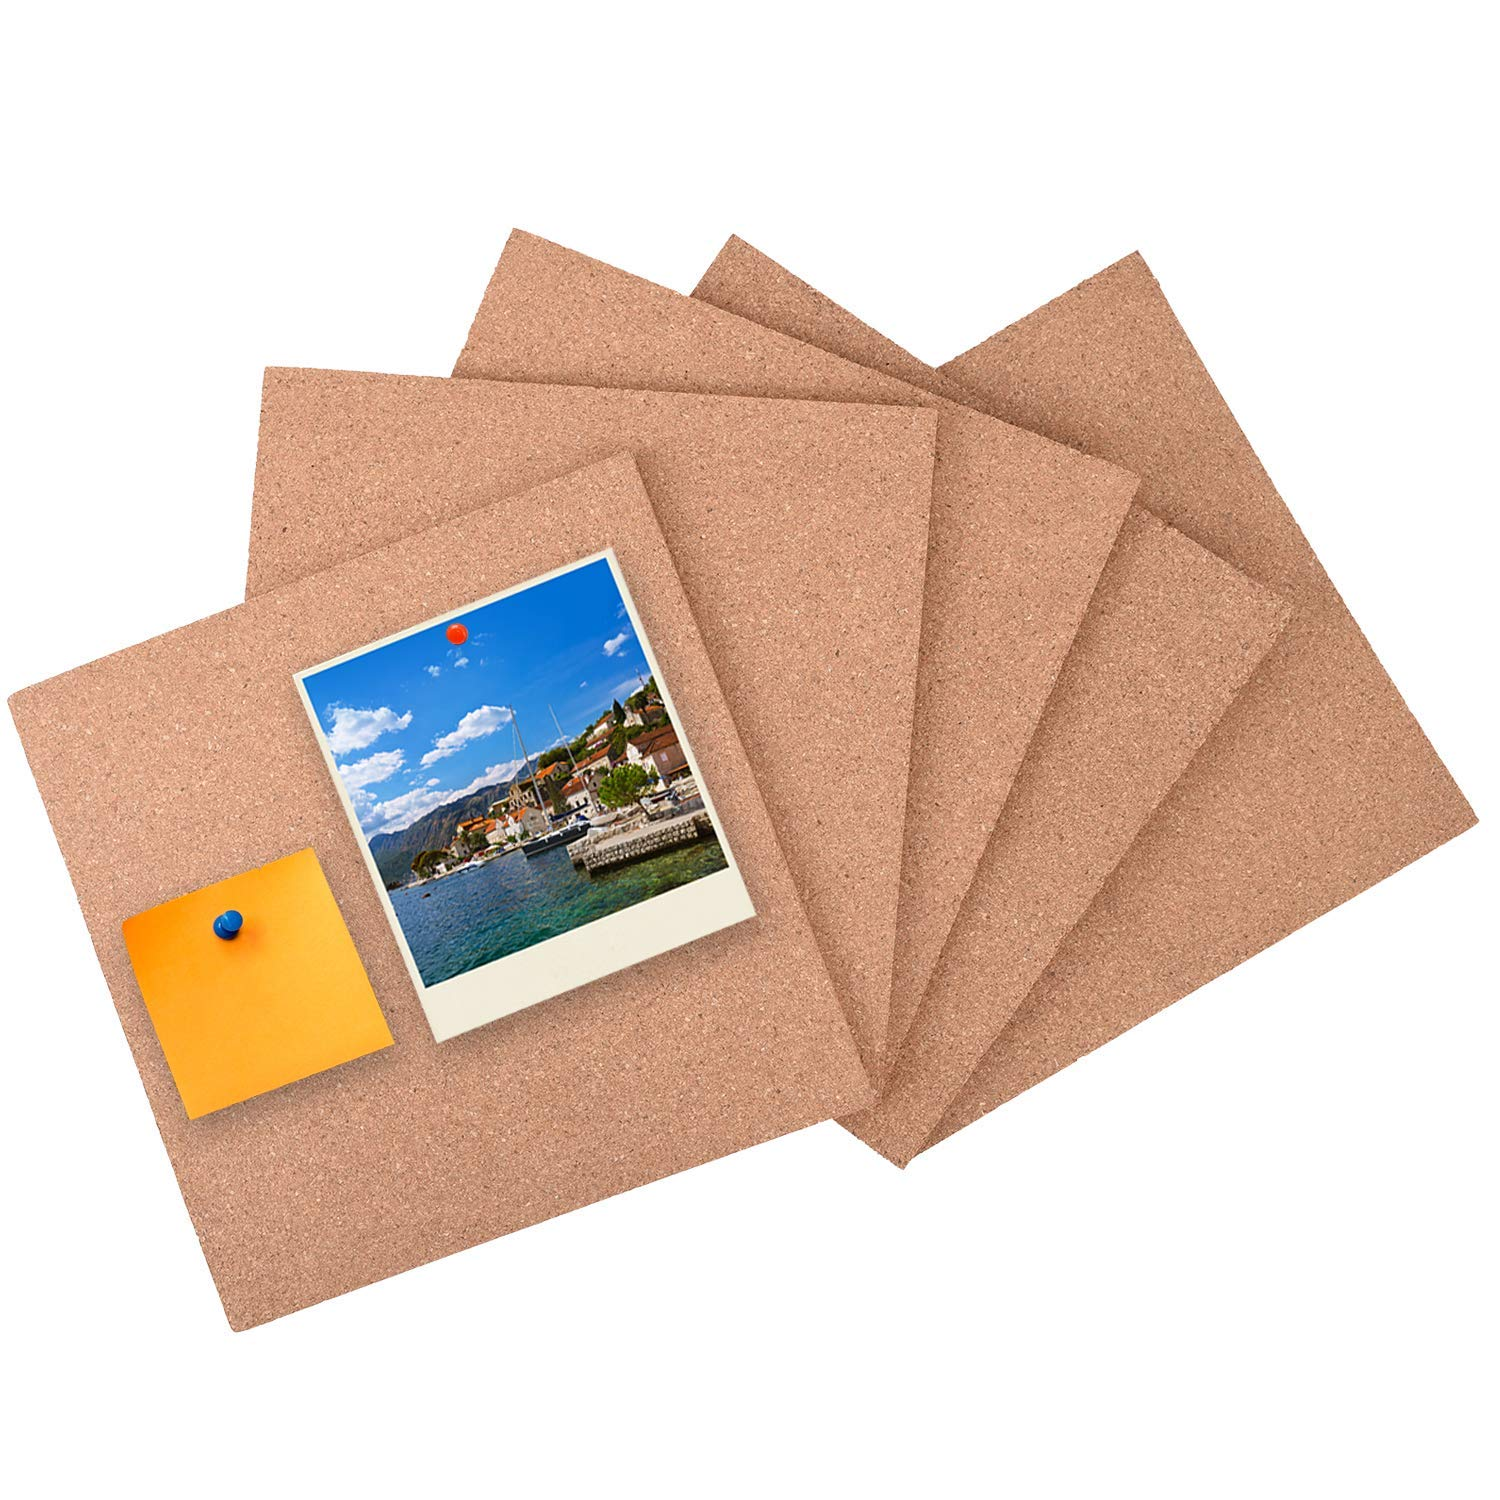 """5 Pack Square Cork Board Tiles with Adhesive 12 x 12""""- Buytra Mini Wall Bulletin Boards, Pin Board Decoration for Photos, Pictures, Sticky Notes, Drawing"""